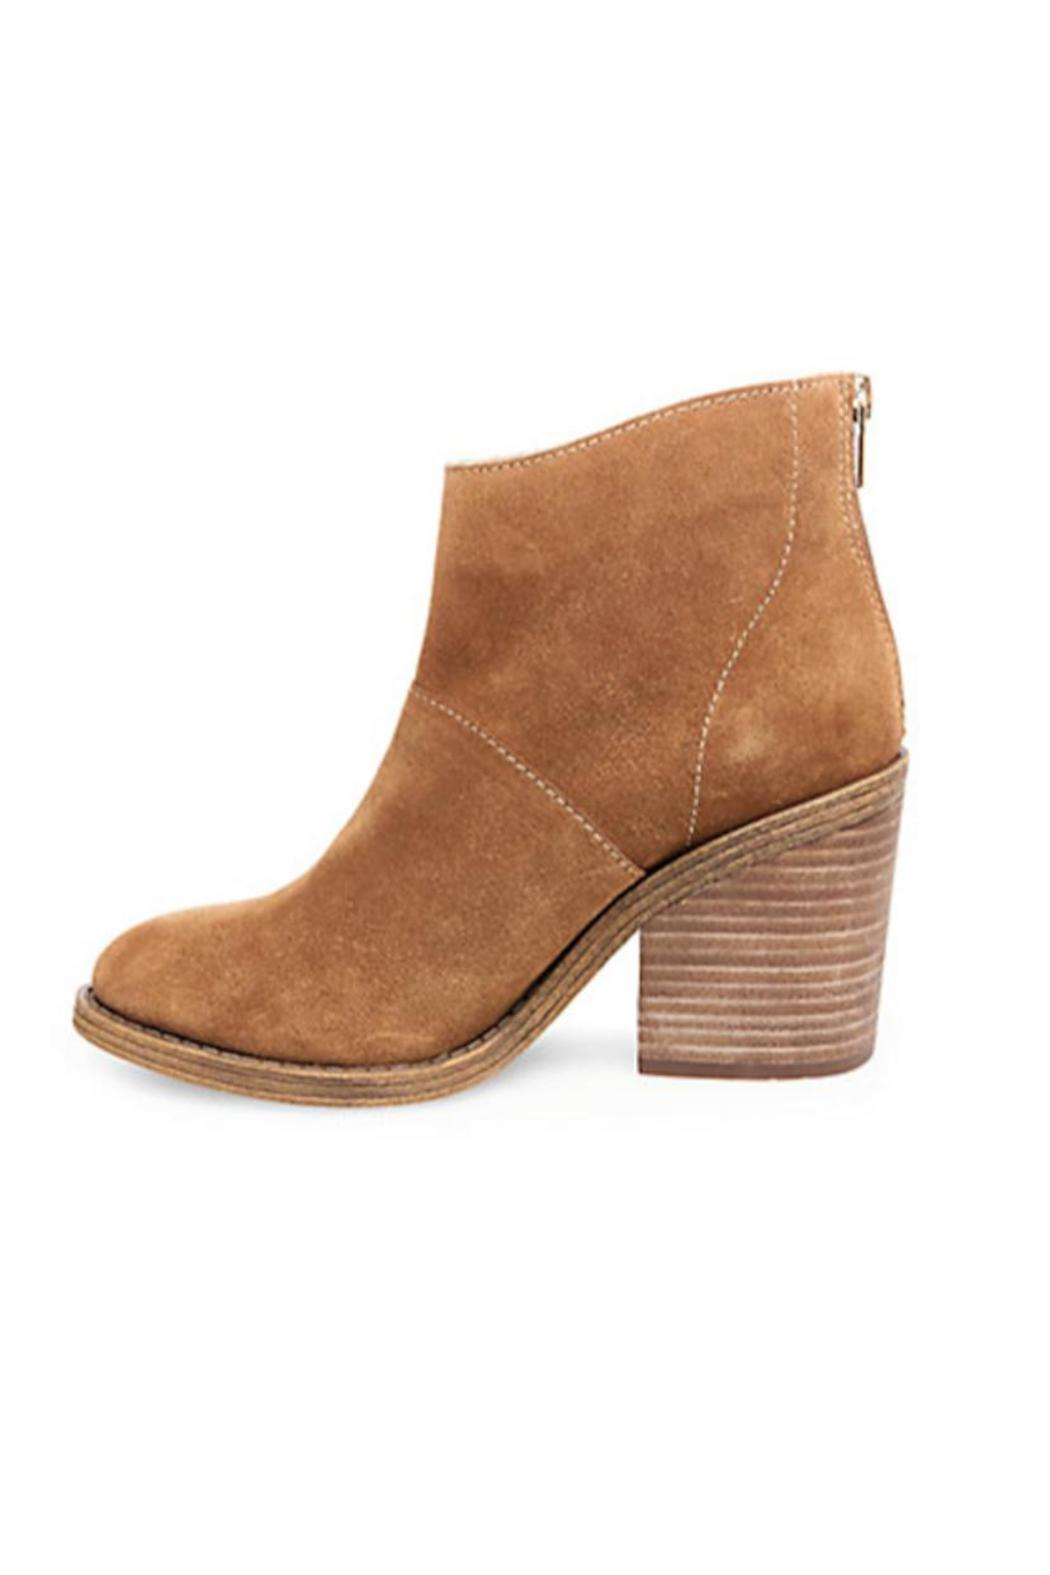 Steve Madden Shrines Boots - Front Cropped Image